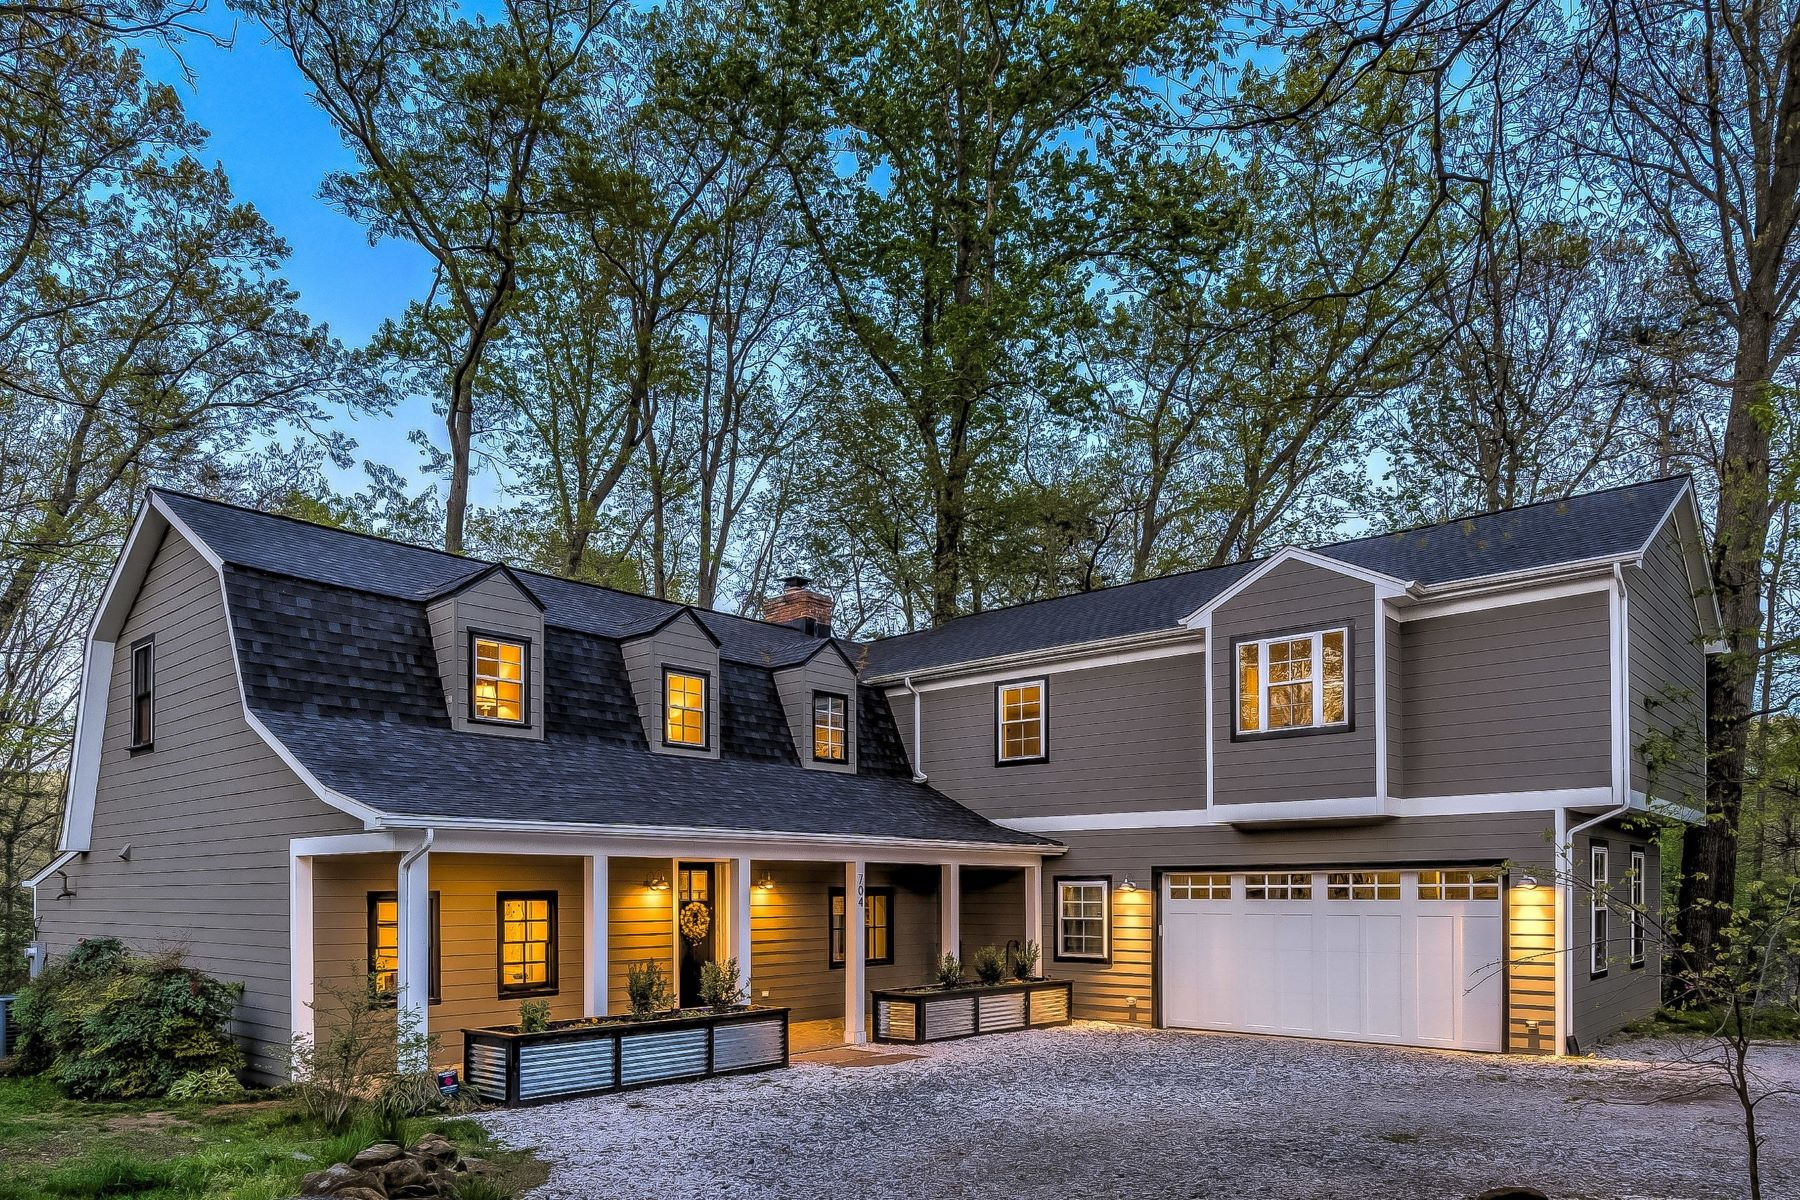 Single Family Homes for Sale at Meticulously Renovated Modern Farmhouse in Stewarts Purchase 704 Benfield Road Severna Park, Maryland 21146 United States